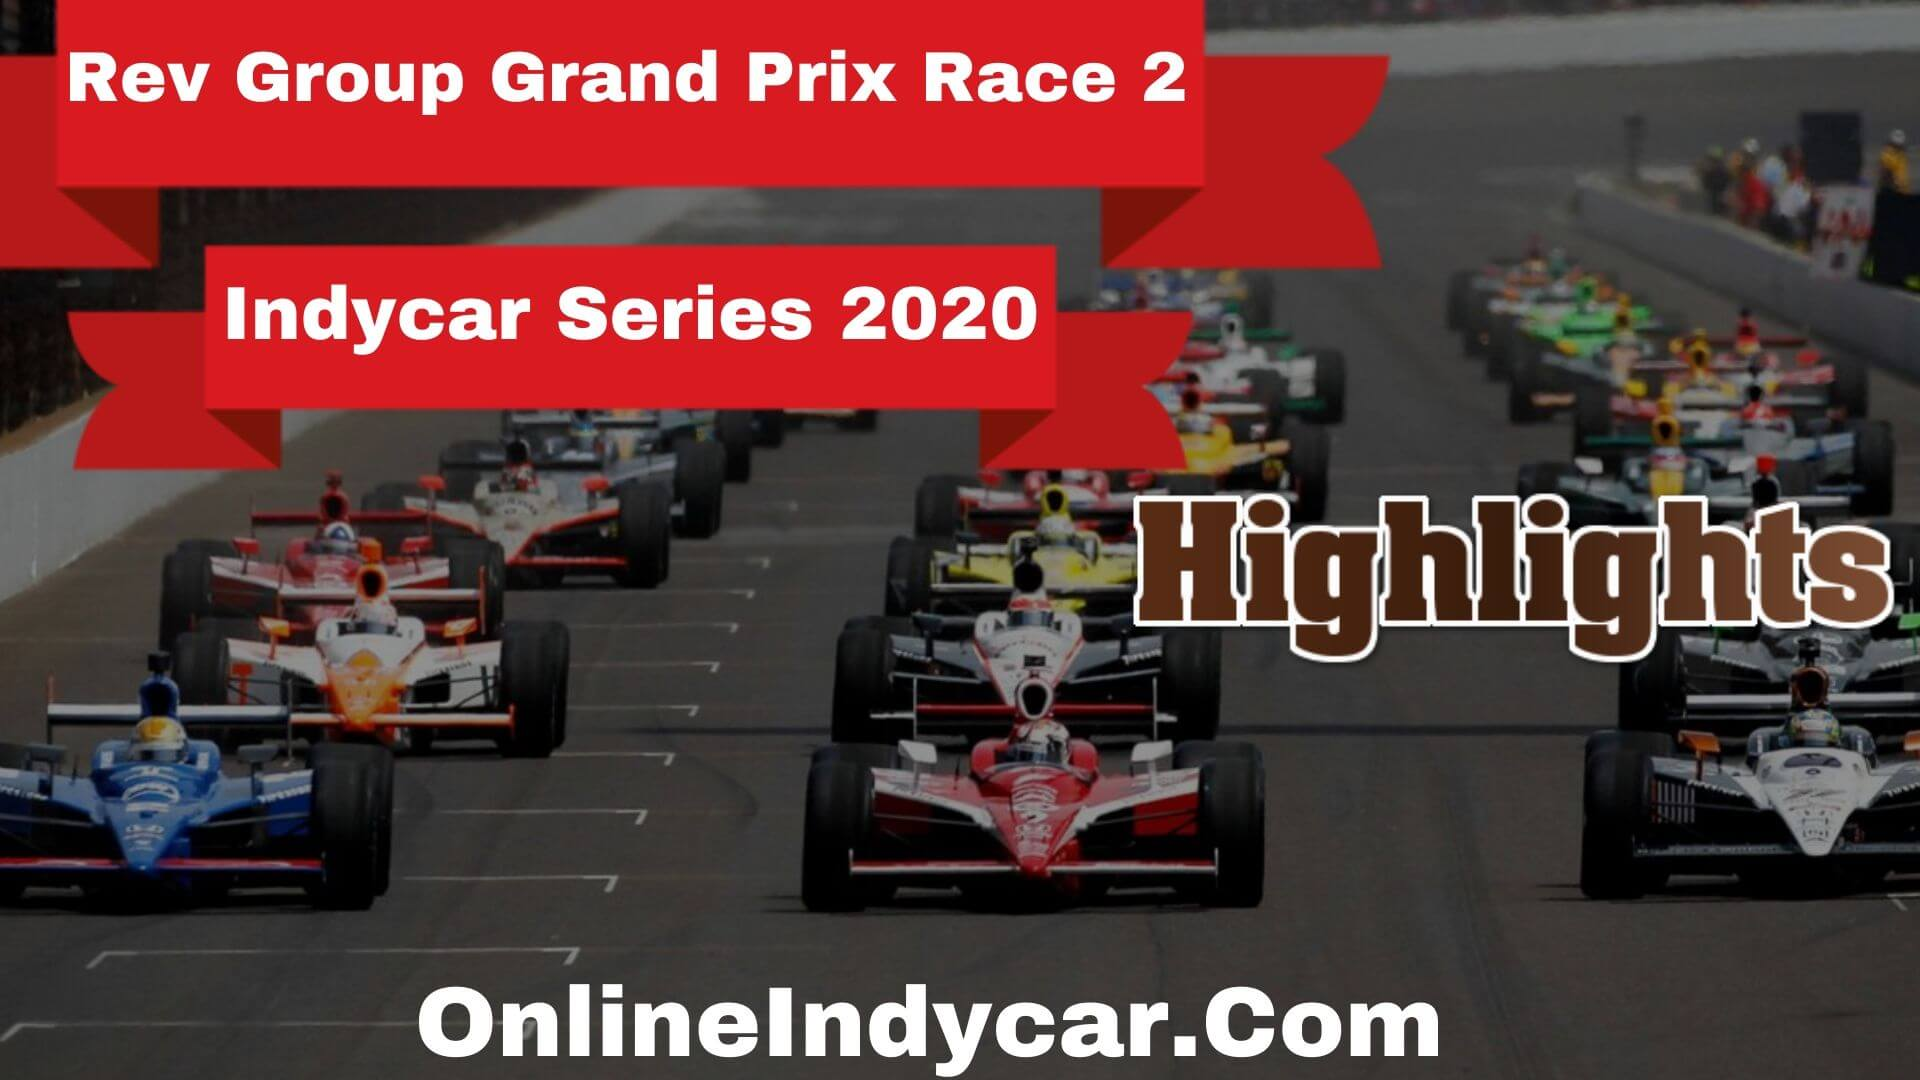 Indycar Rev Group Grand Prix Race 2 Highlights 2020